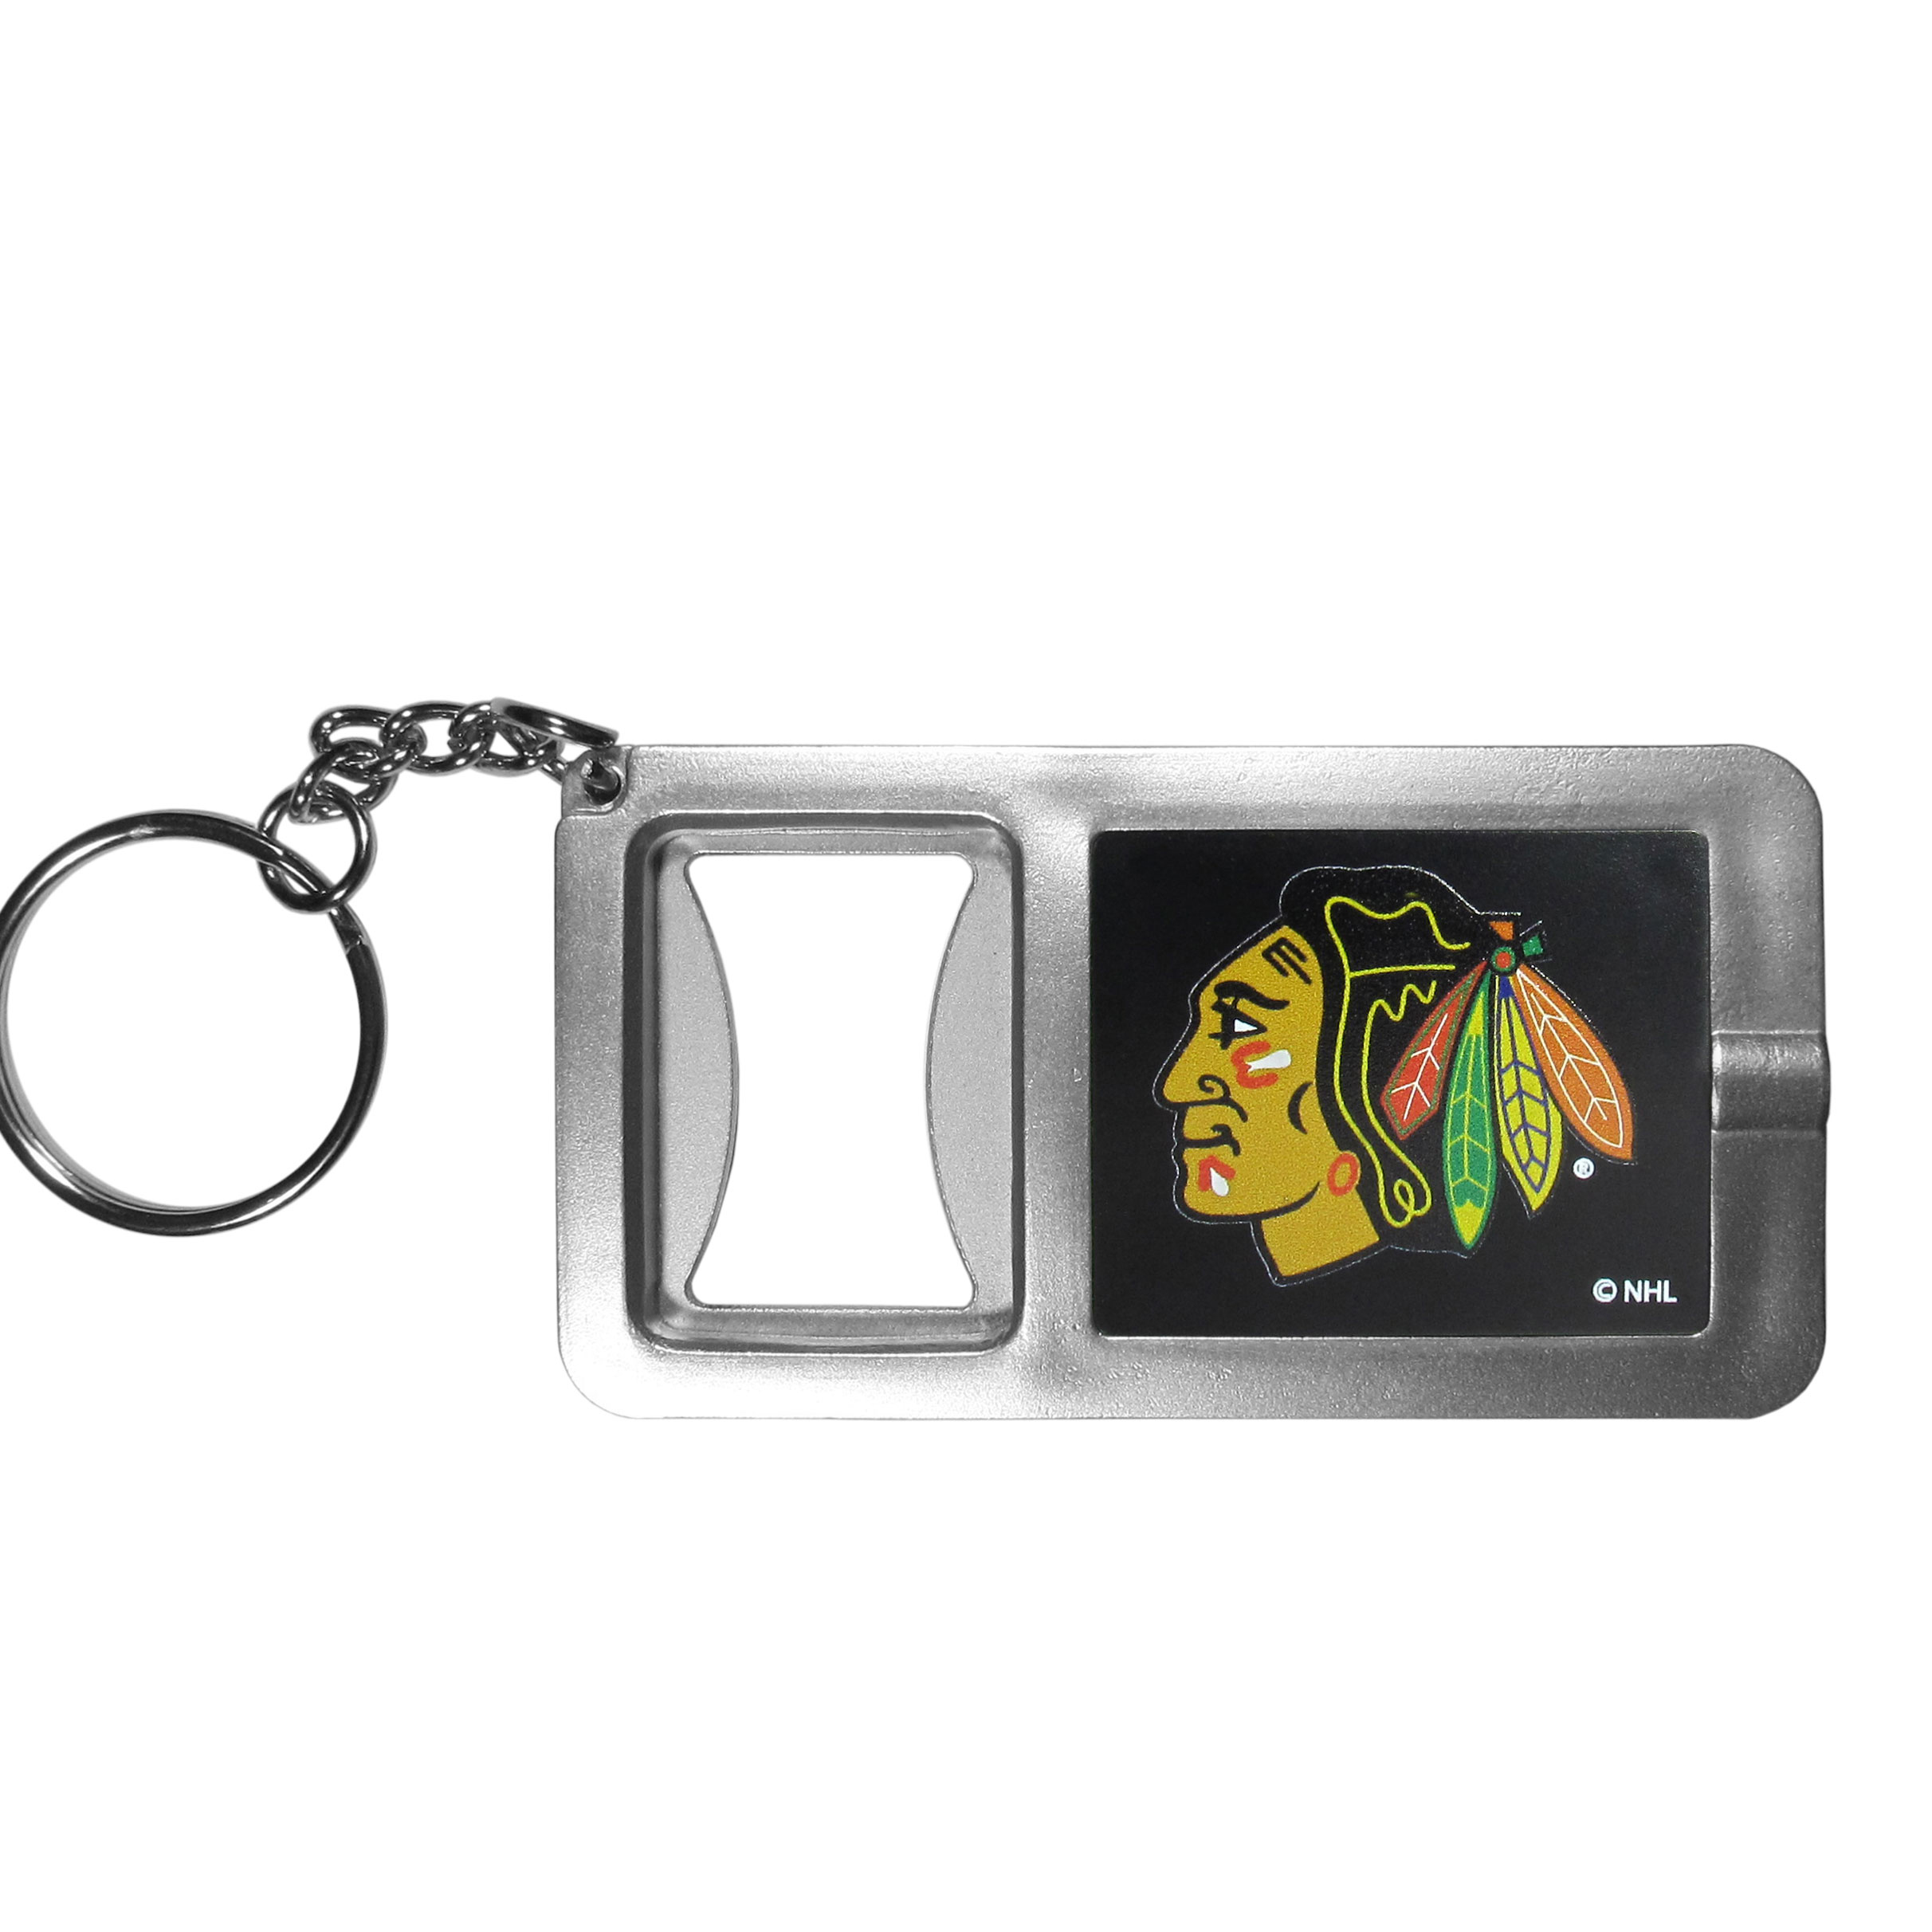 Chicago Blackhawks® Flashlight Key Chain with Bottle Opener - Never be without light with our Chicago Blackhawks® flashlight keychain that features a handy bottle opener feature. This versatile key chain is perfect for camping and travel and is a great way to show off your team pride!